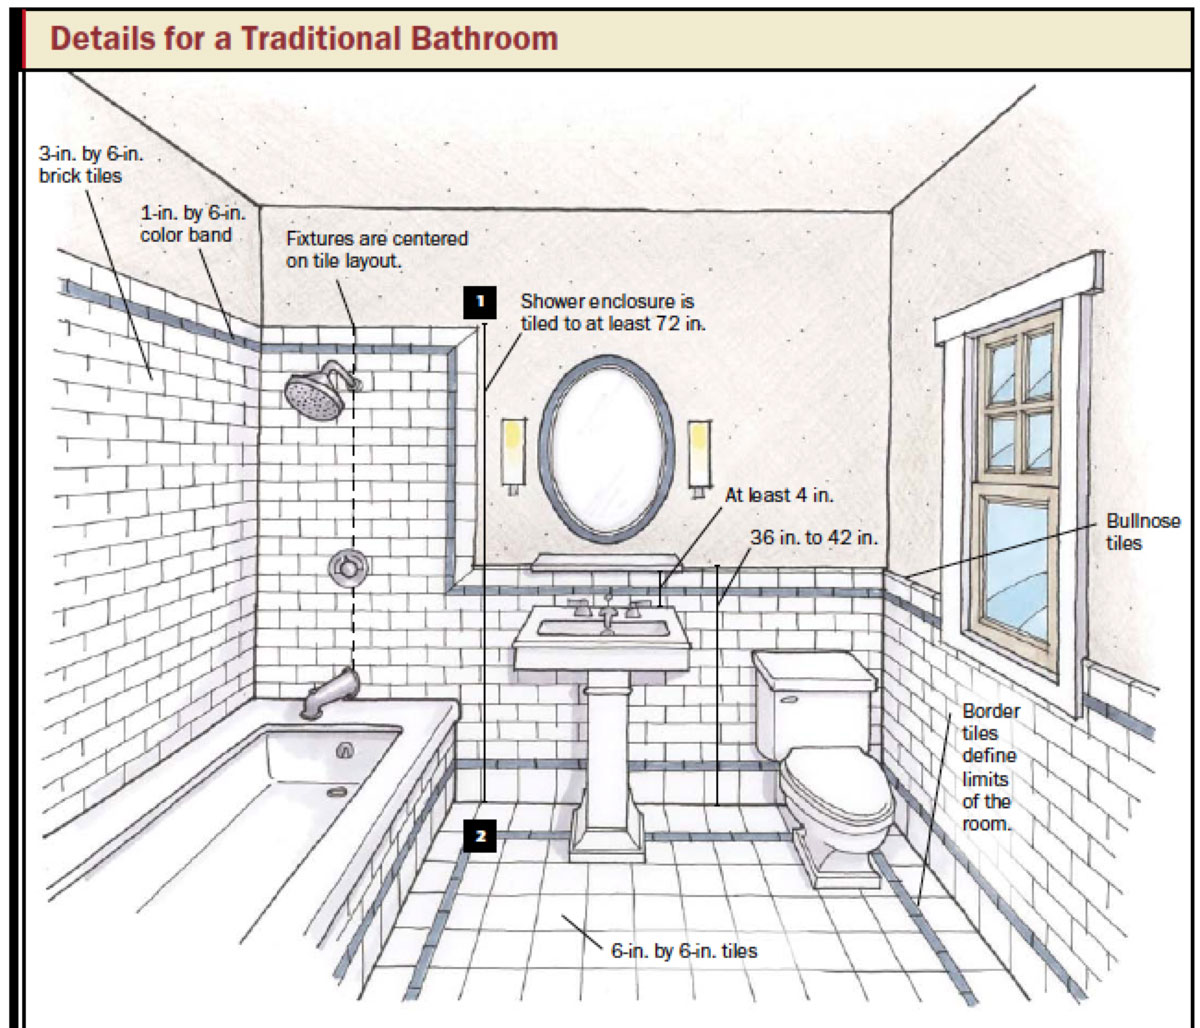 Bathroom design planning tips taymor for Bathroom templates for planning